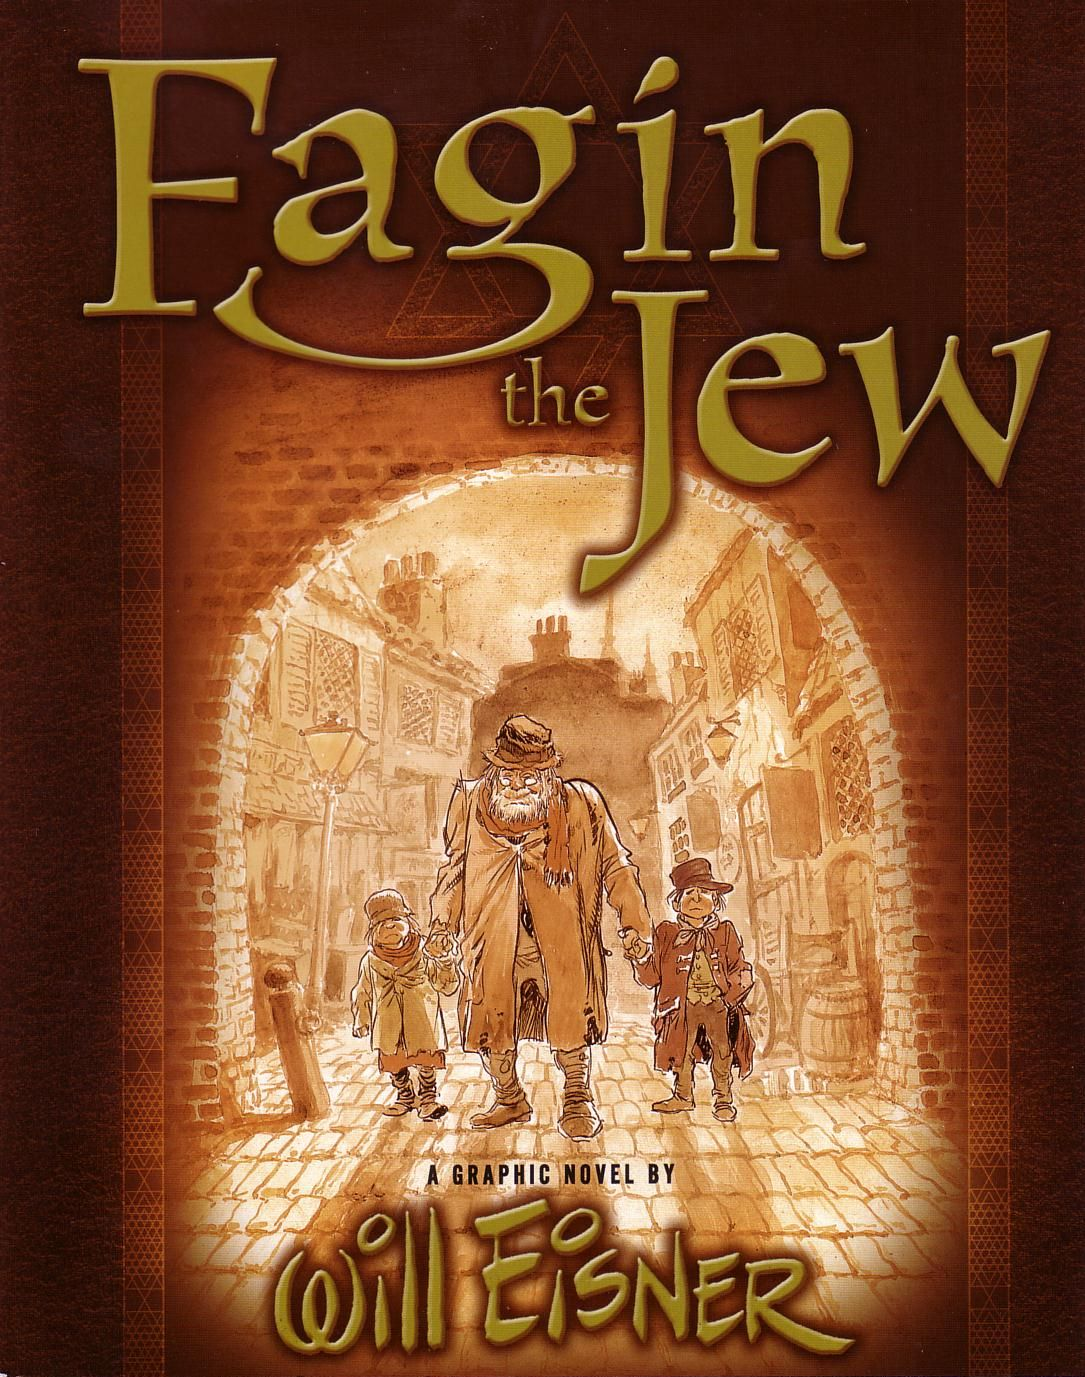 Fagin the Jew - Will Eisner